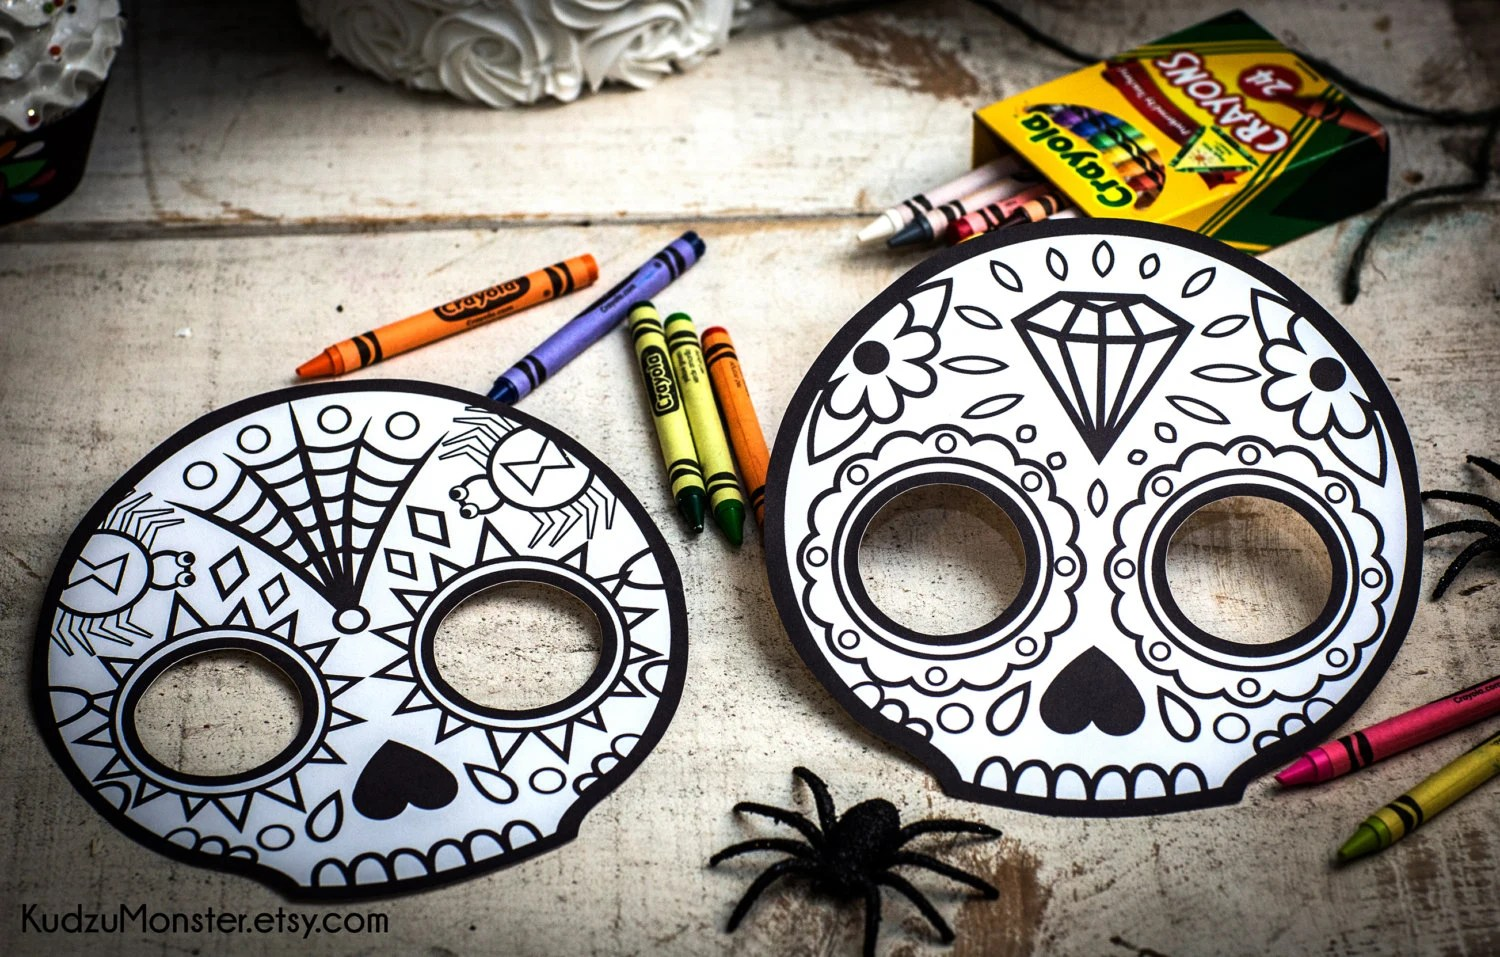 Punk Sugar Skull Day Of The Dead Party Printable Decor Kit Dia